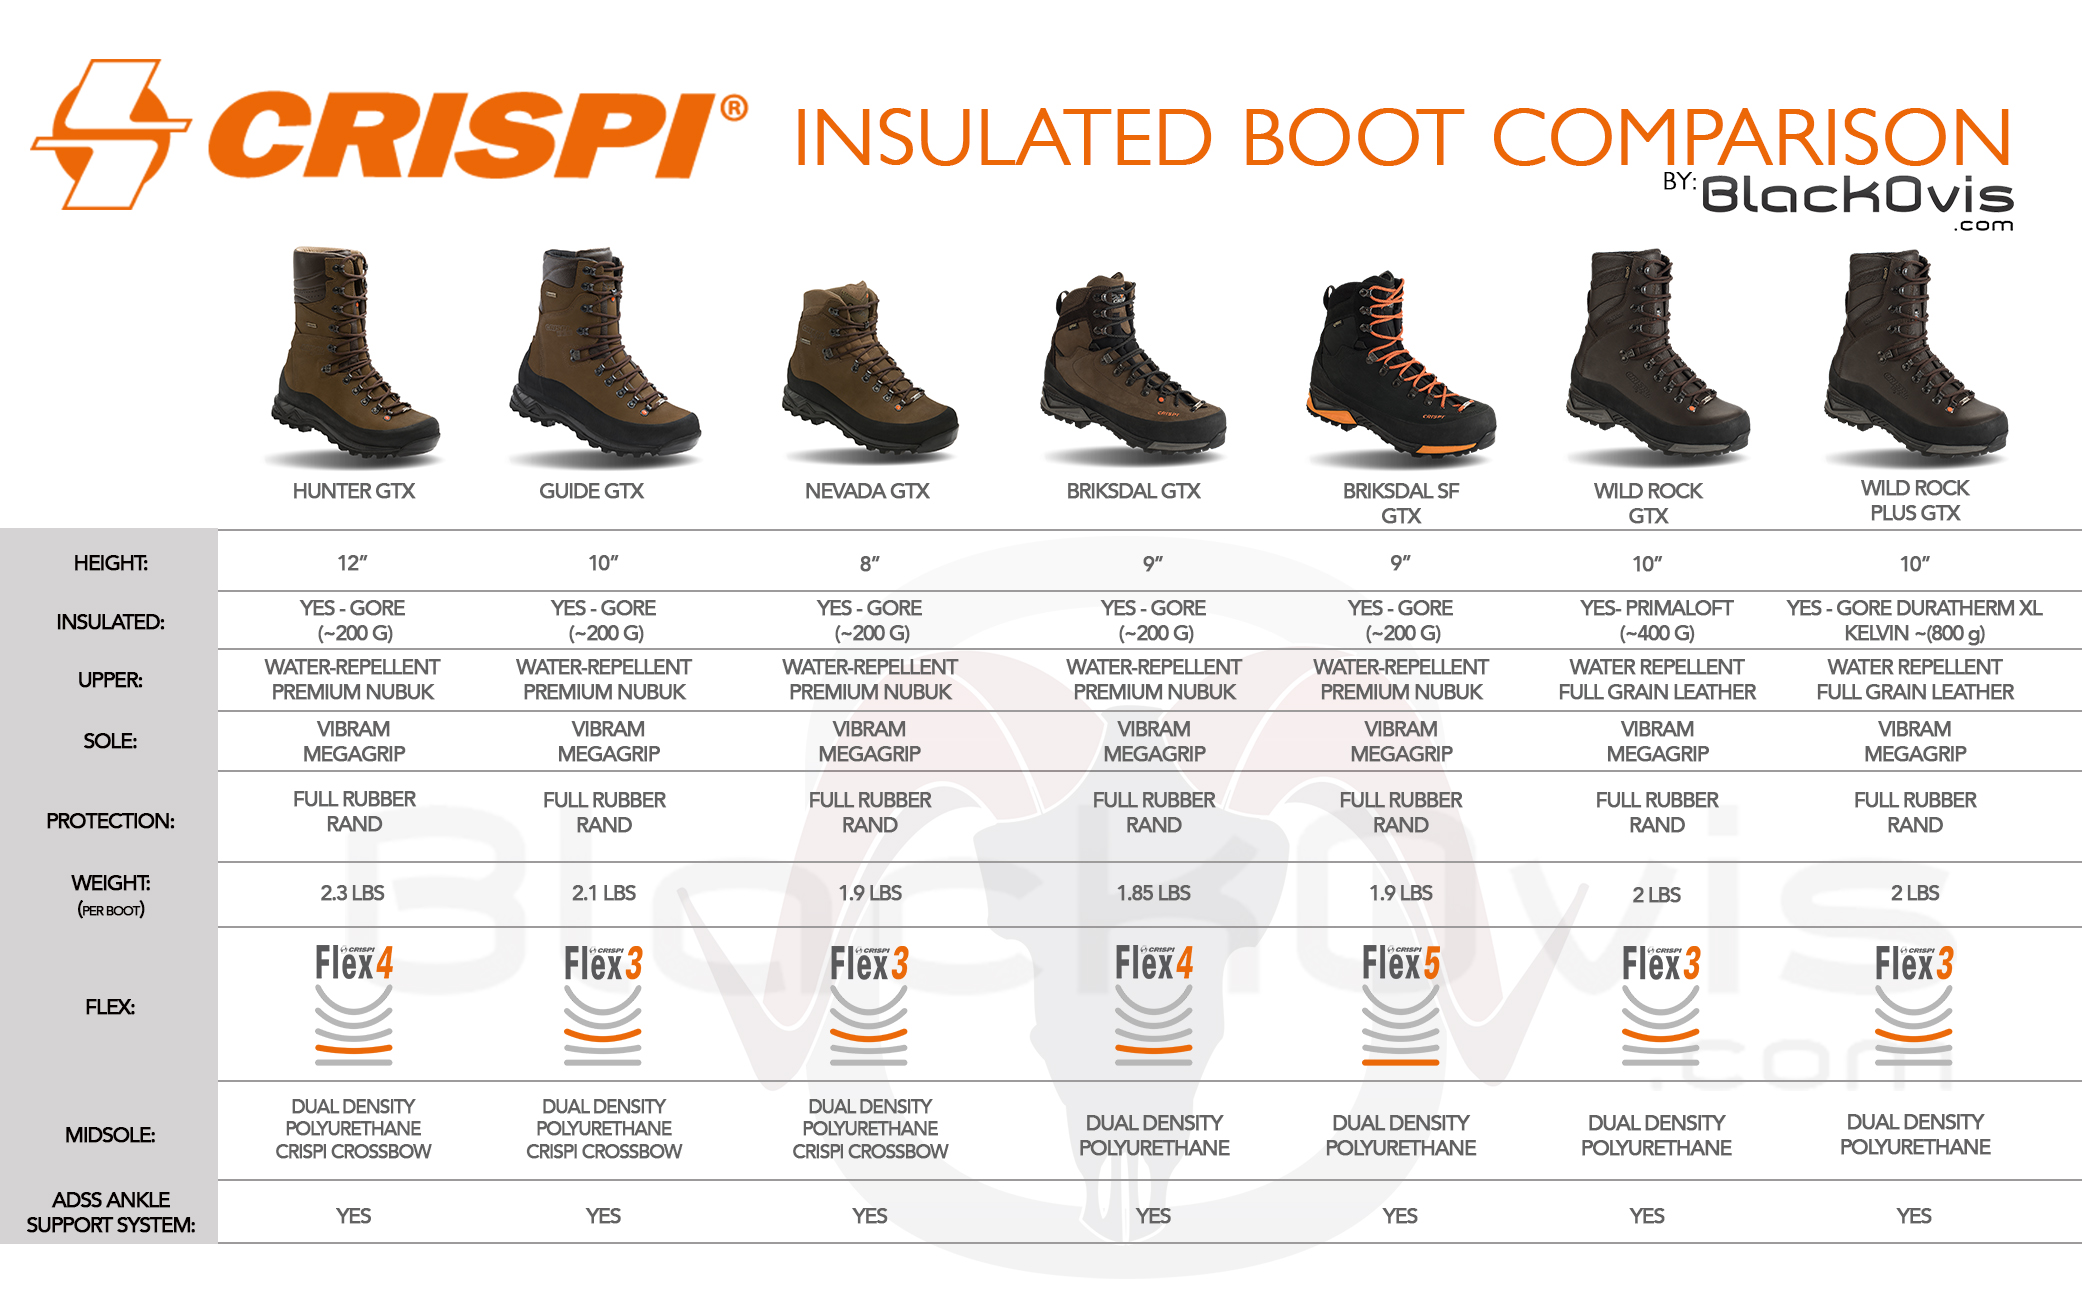 Crispi Insulated Comparison Chart